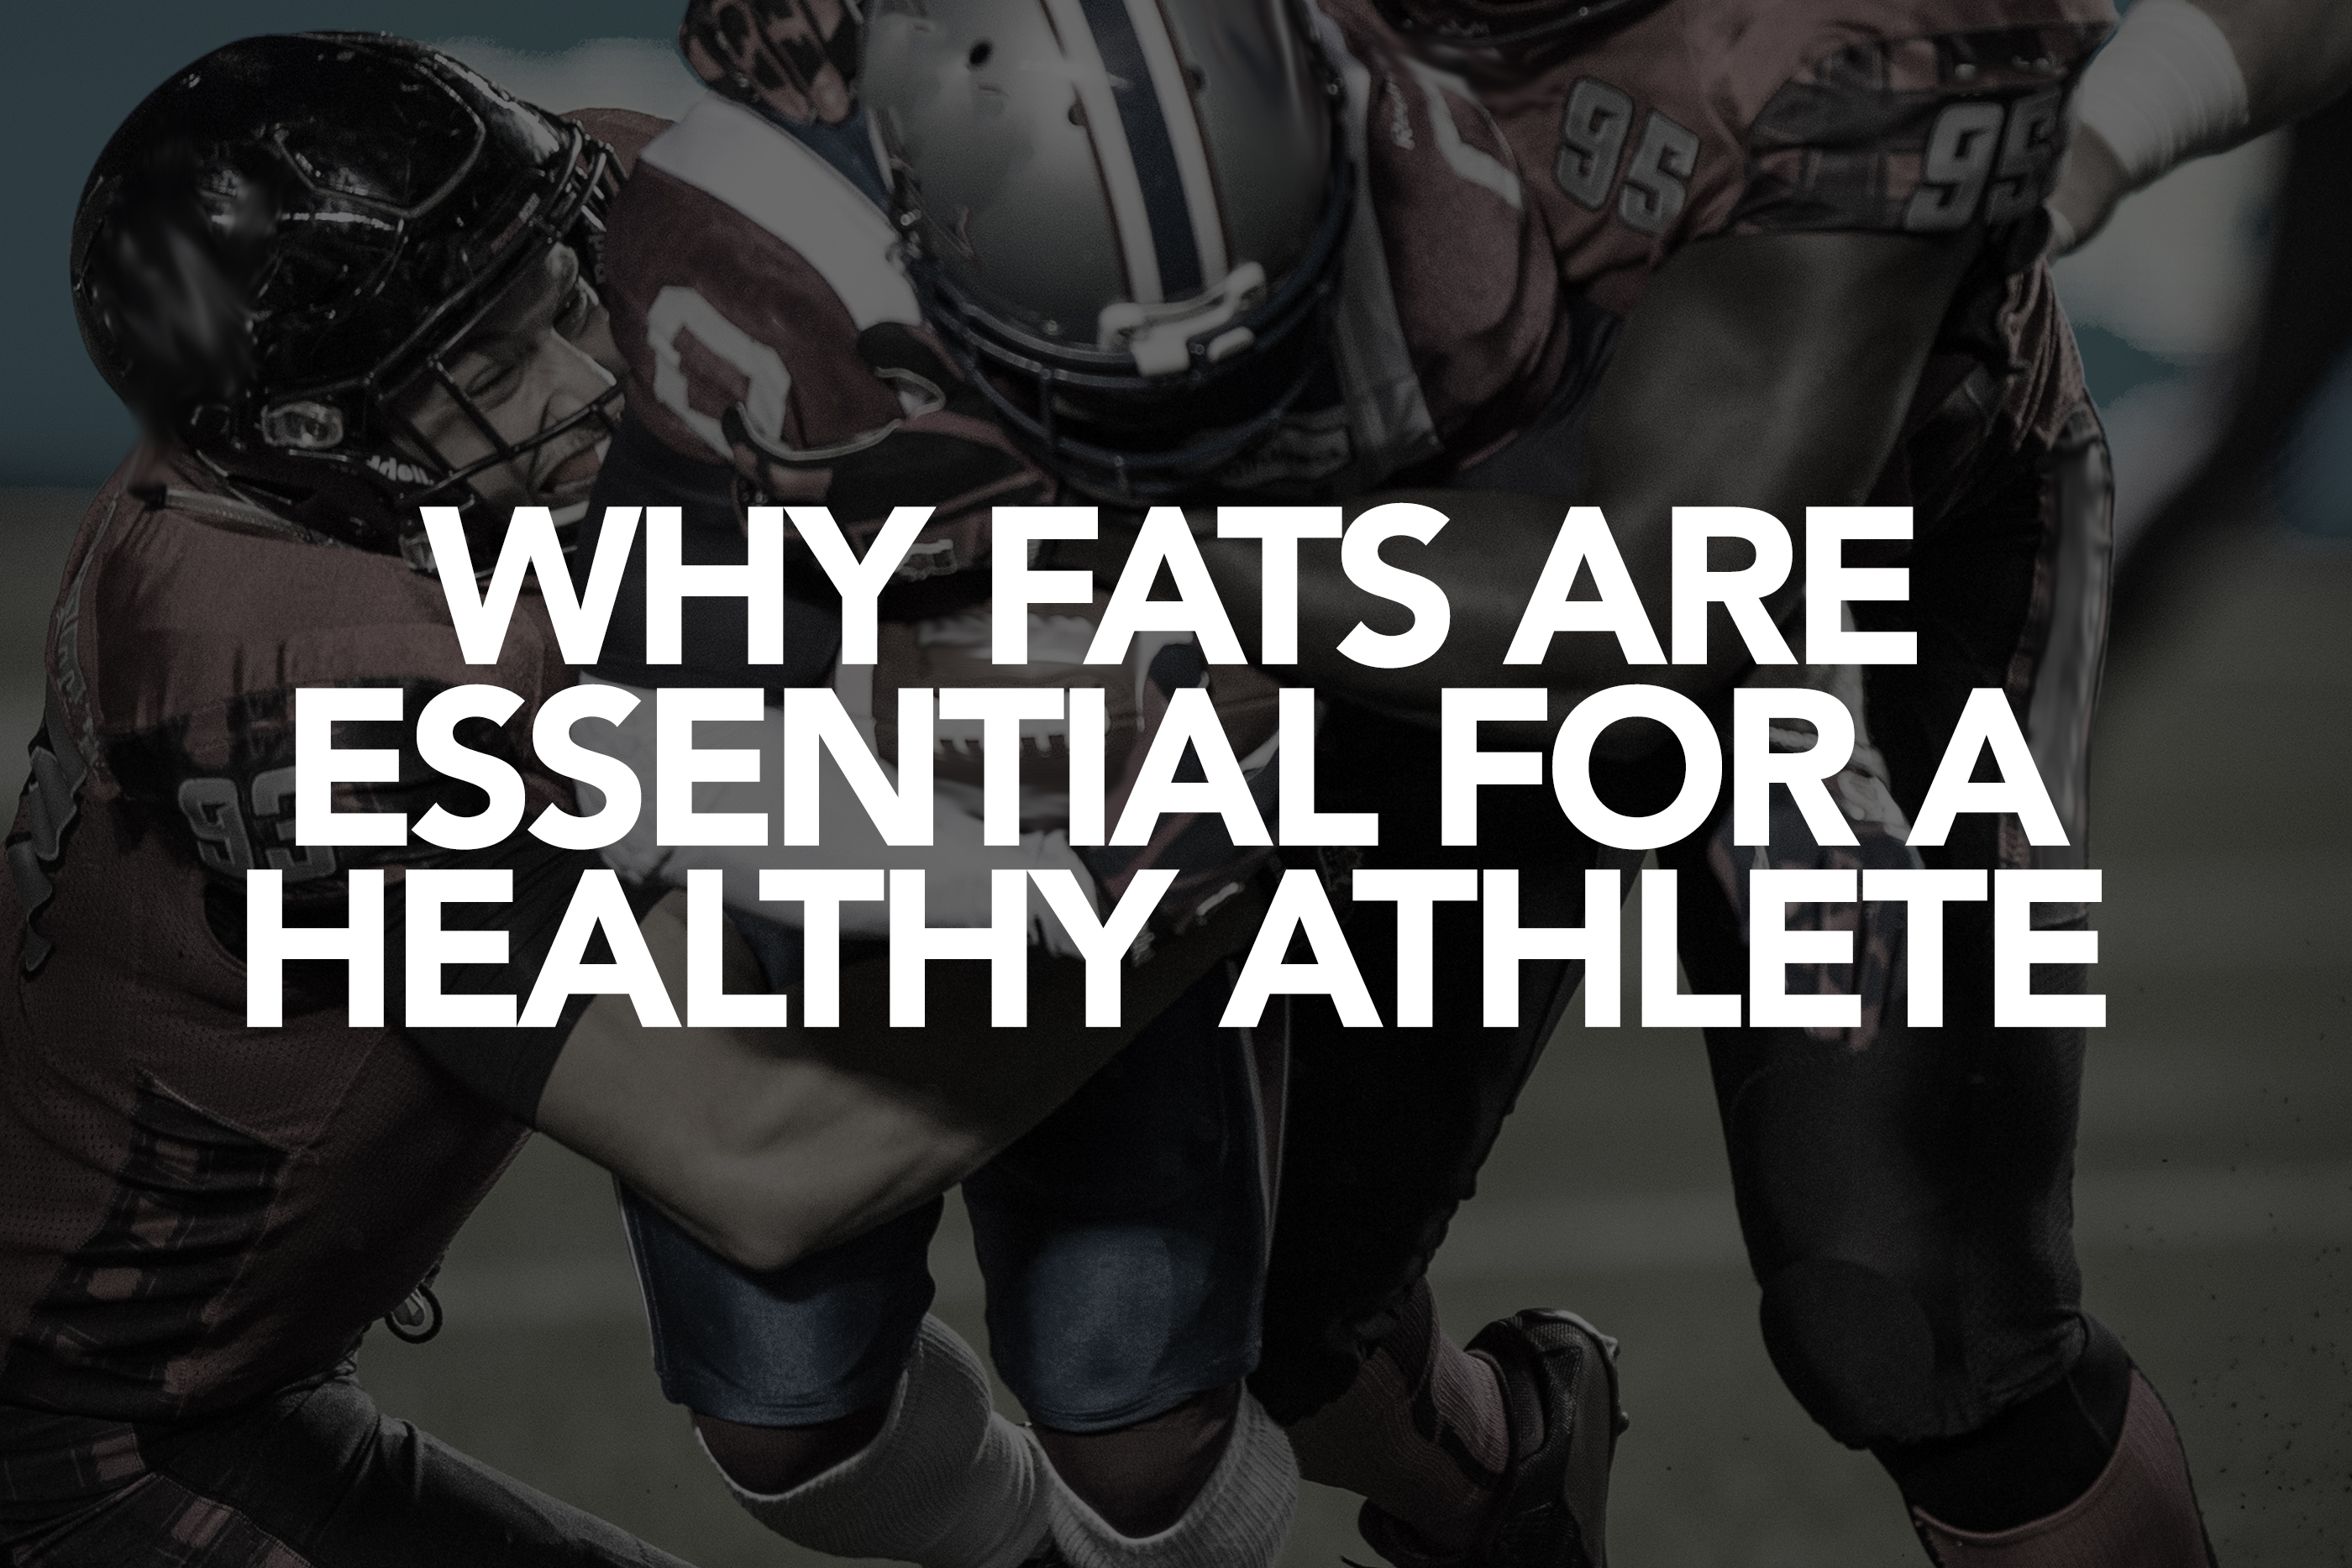 WHY FAT IS ESSENTIAL FOR A HEALTHY ATHLETE